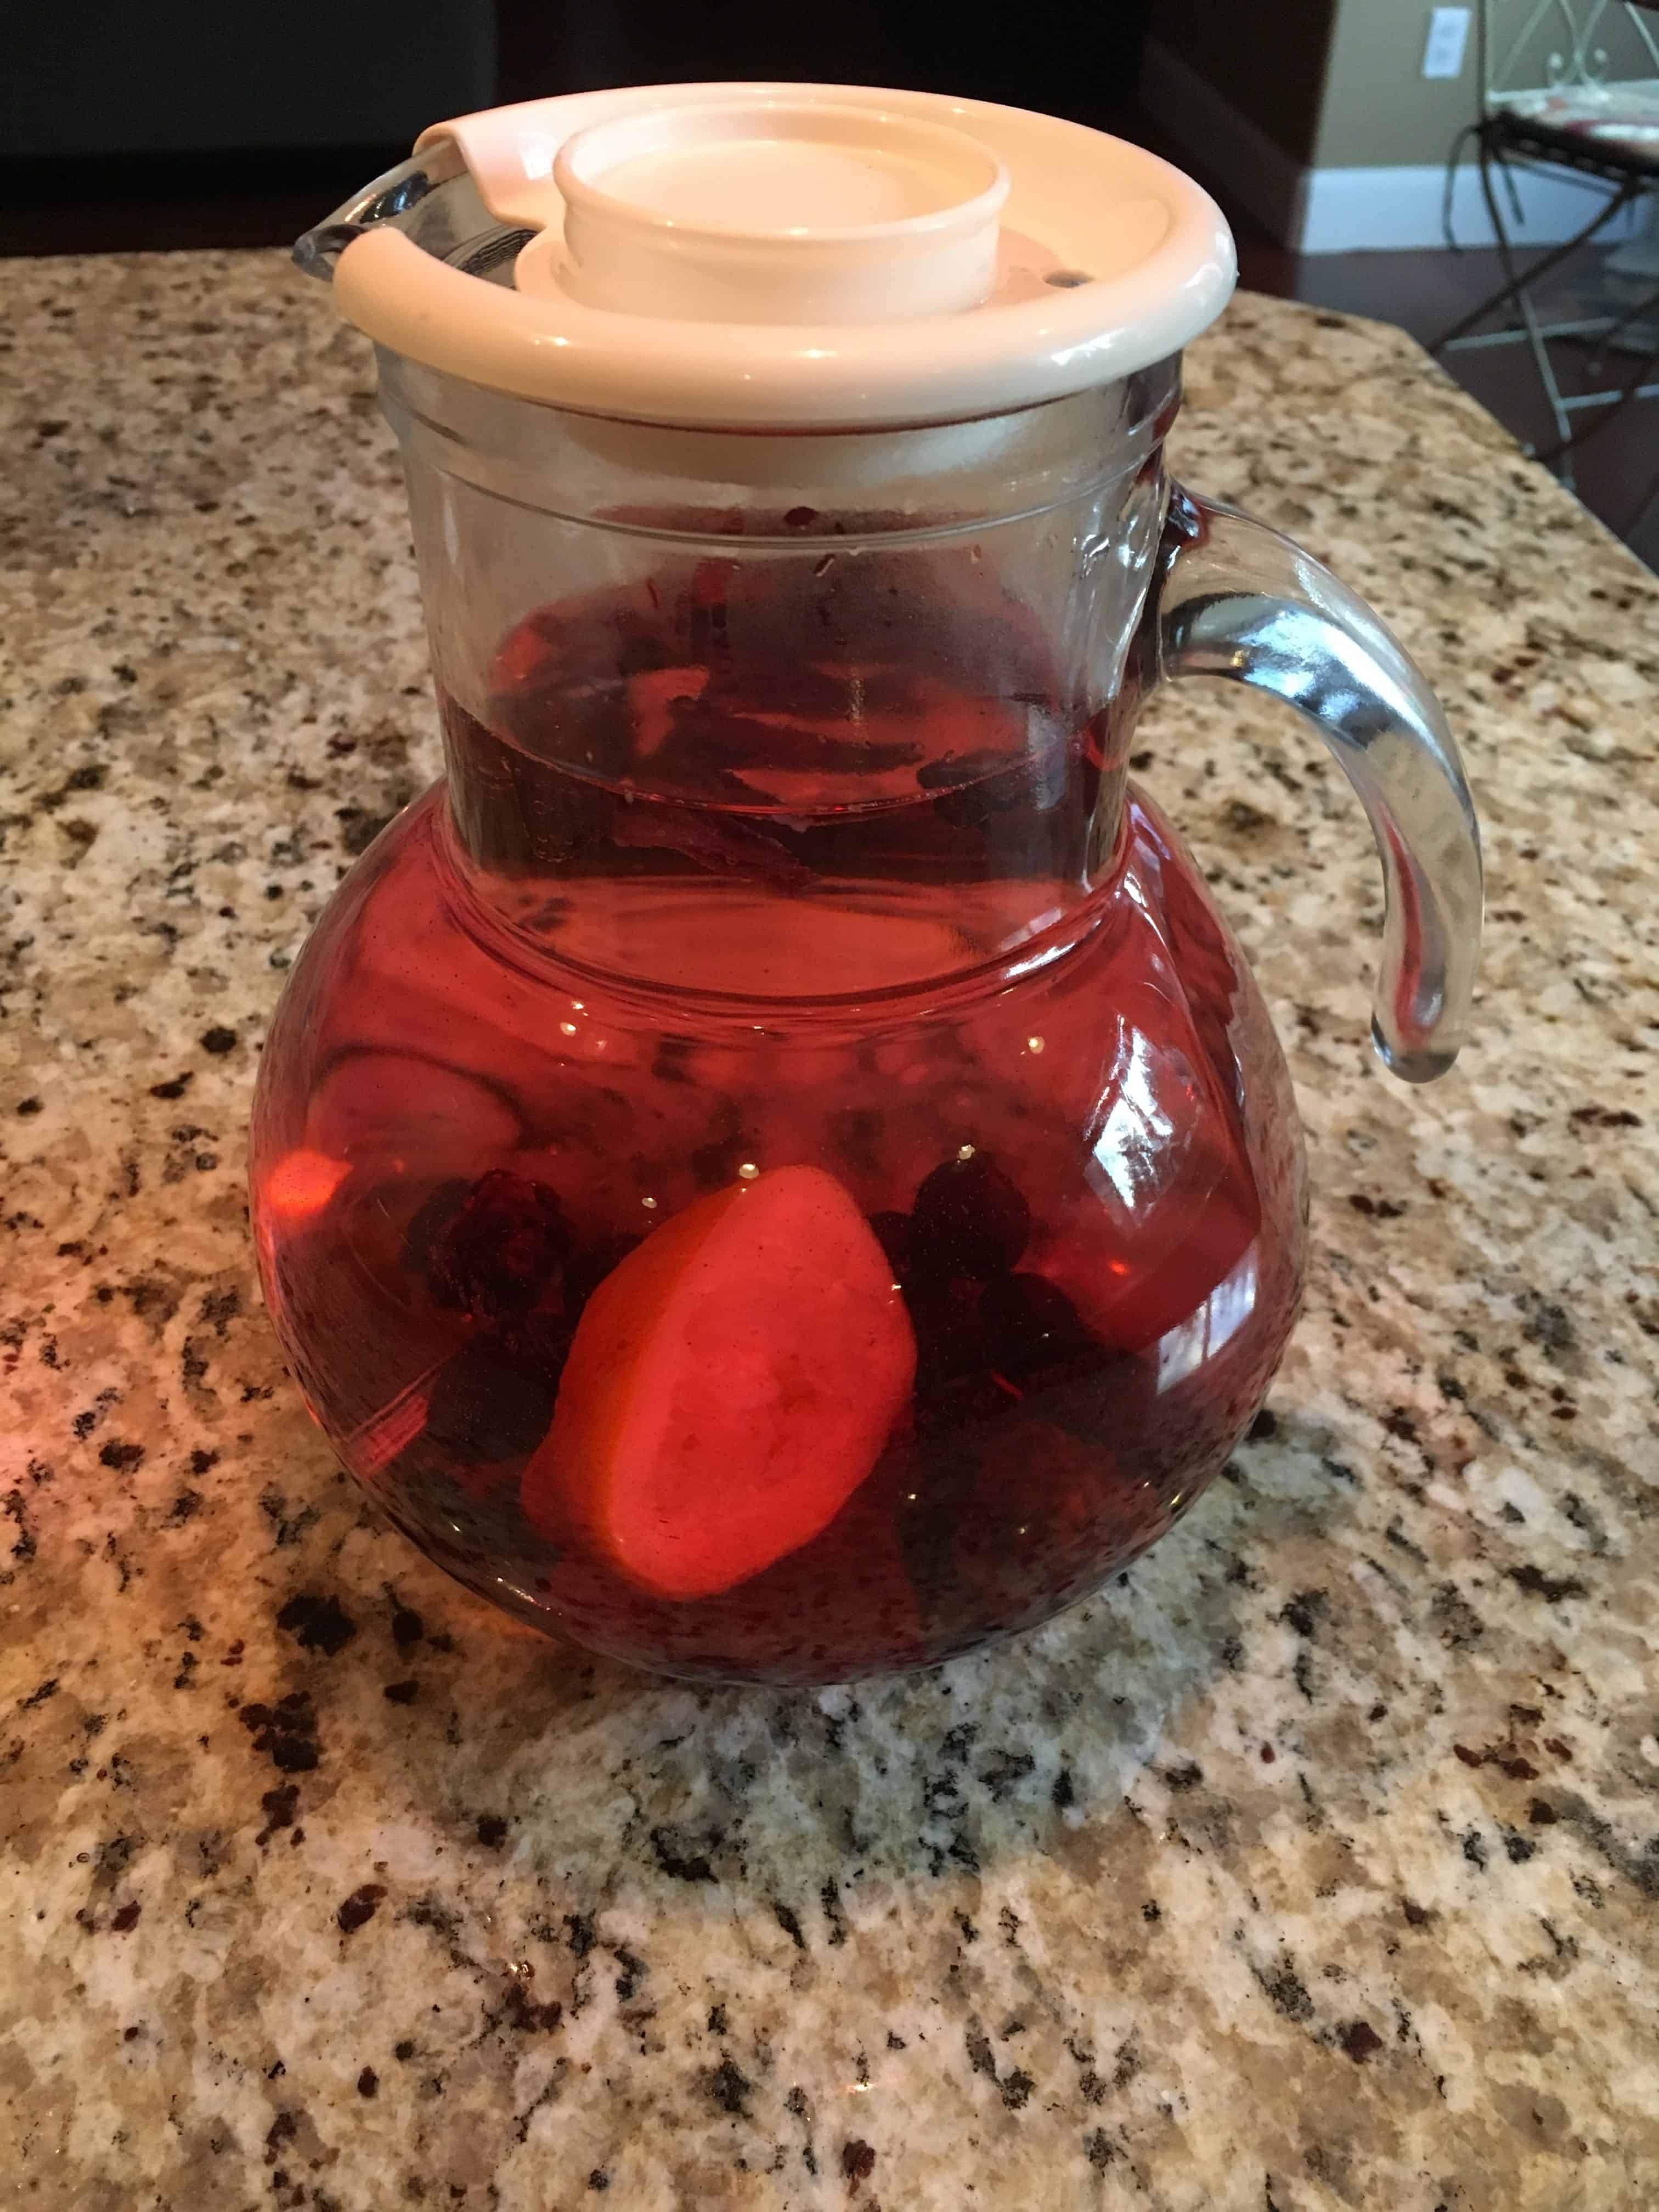 Pitcher of Water Infused with hibiscus flowers, lemons, and berries. https://trimazing.com/